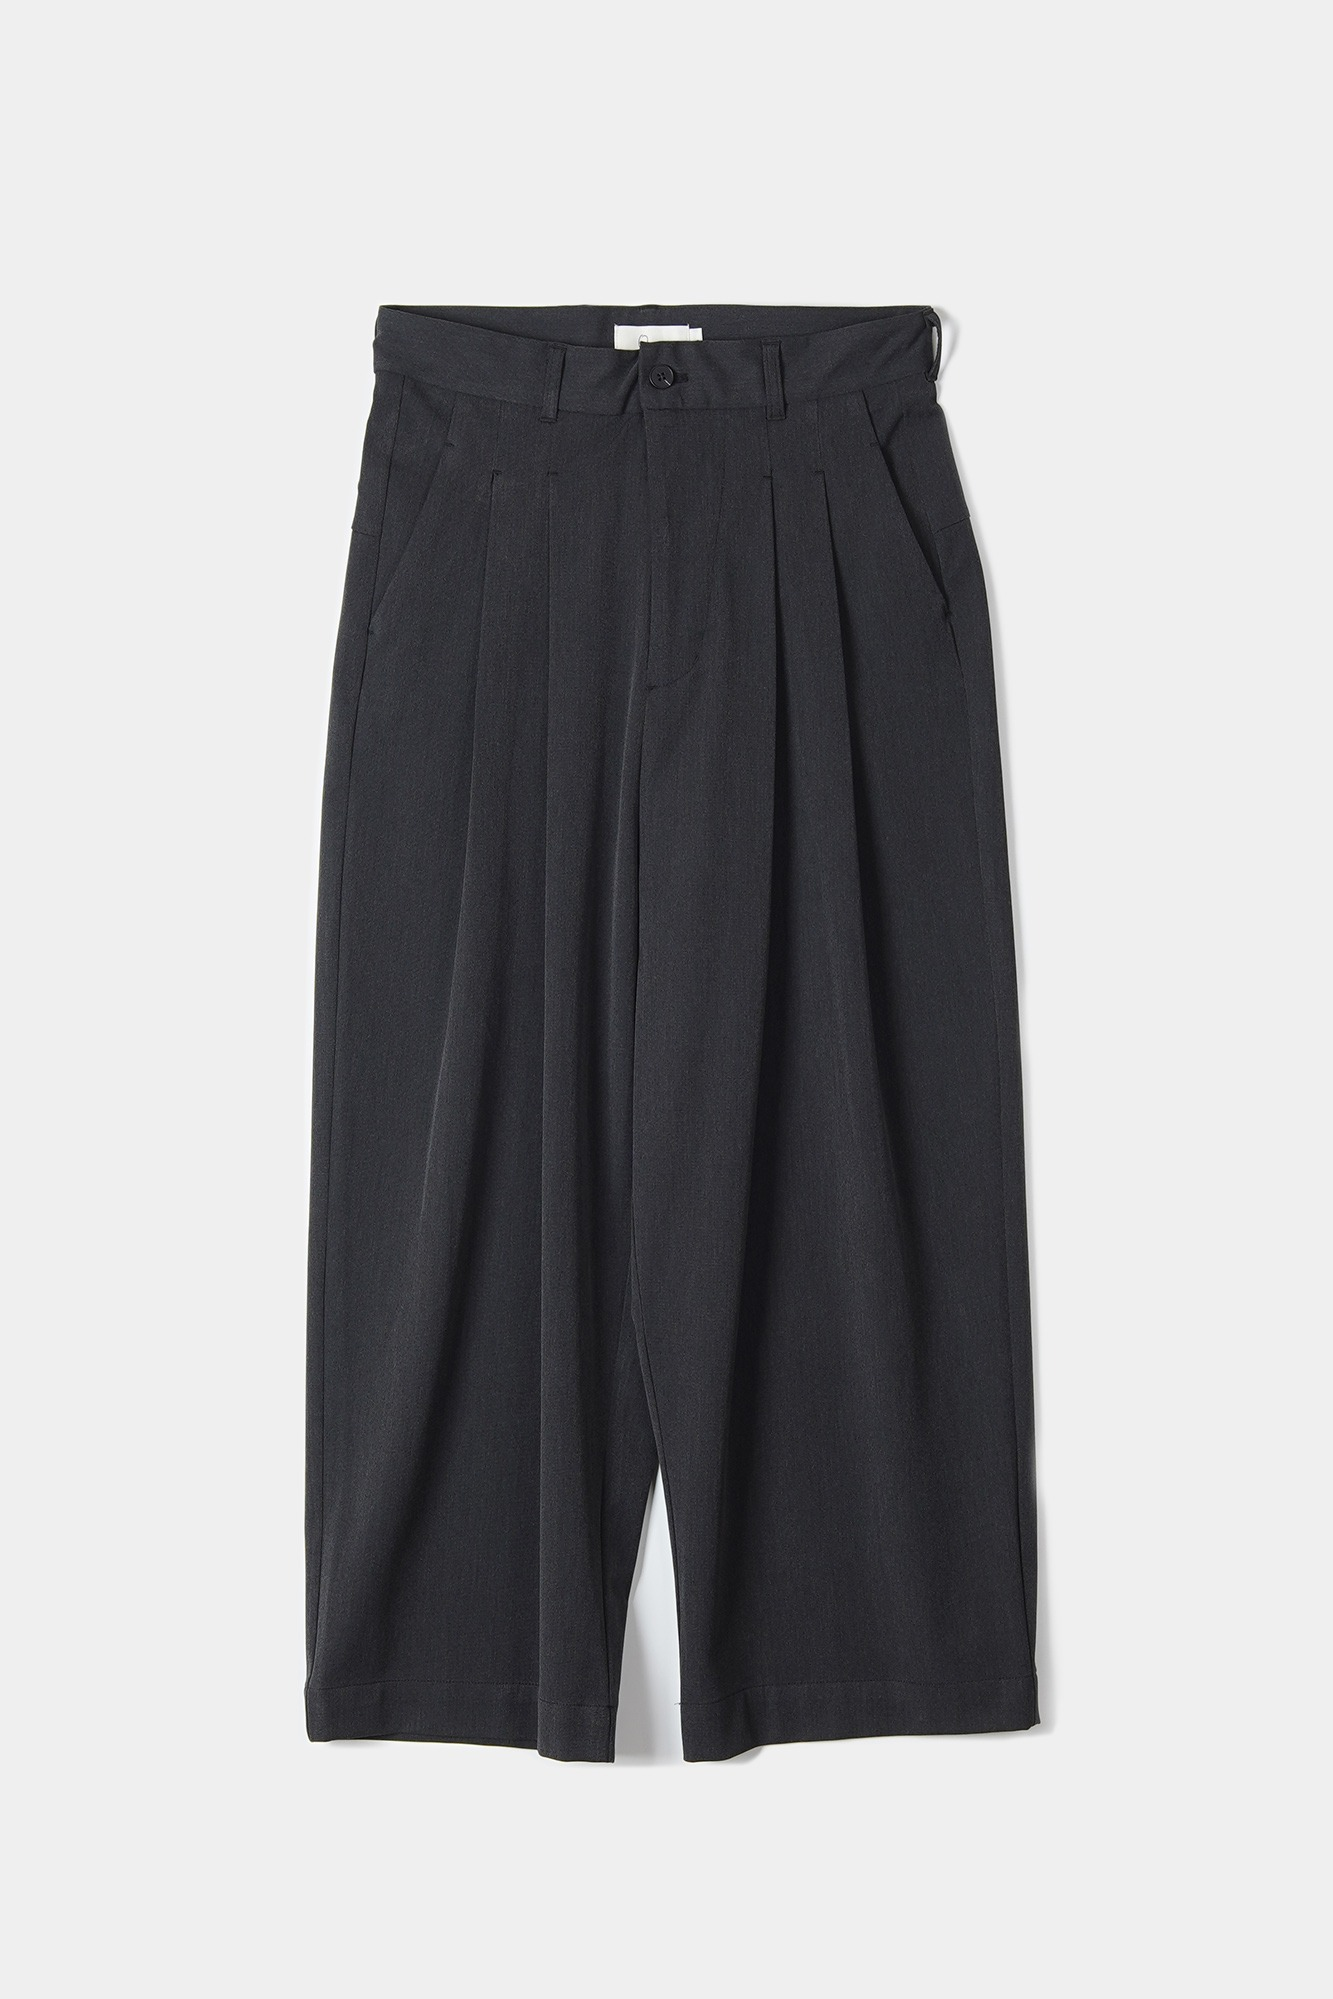 "OOPARTS Wide-leg long pants ""Dark grey"""